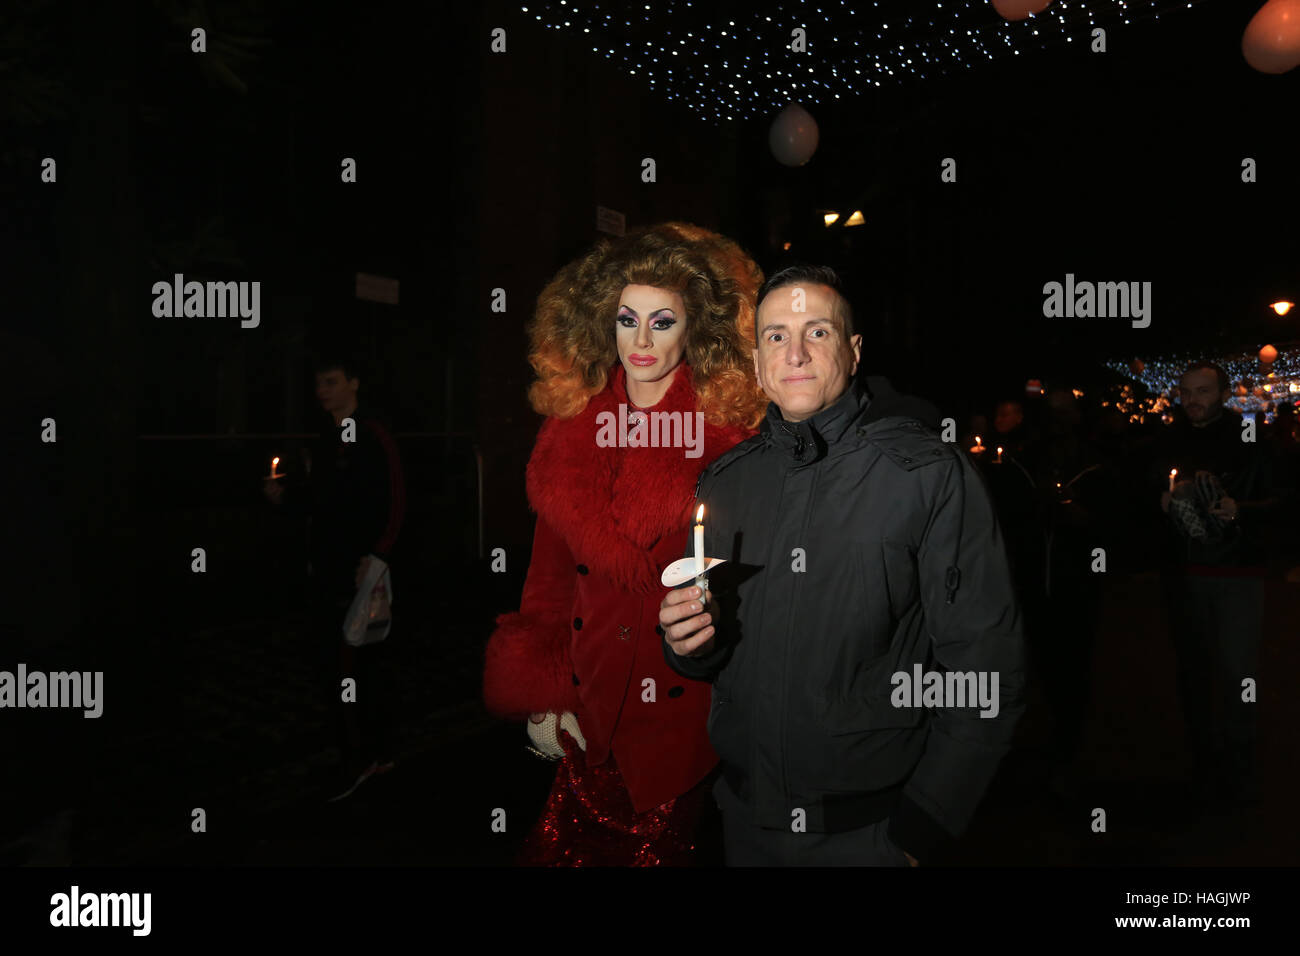 Divina De Campo joins candlelight procession for World Aids Day, Sackville Gardens,Gay Village, Manchester, UK, - Stock Image